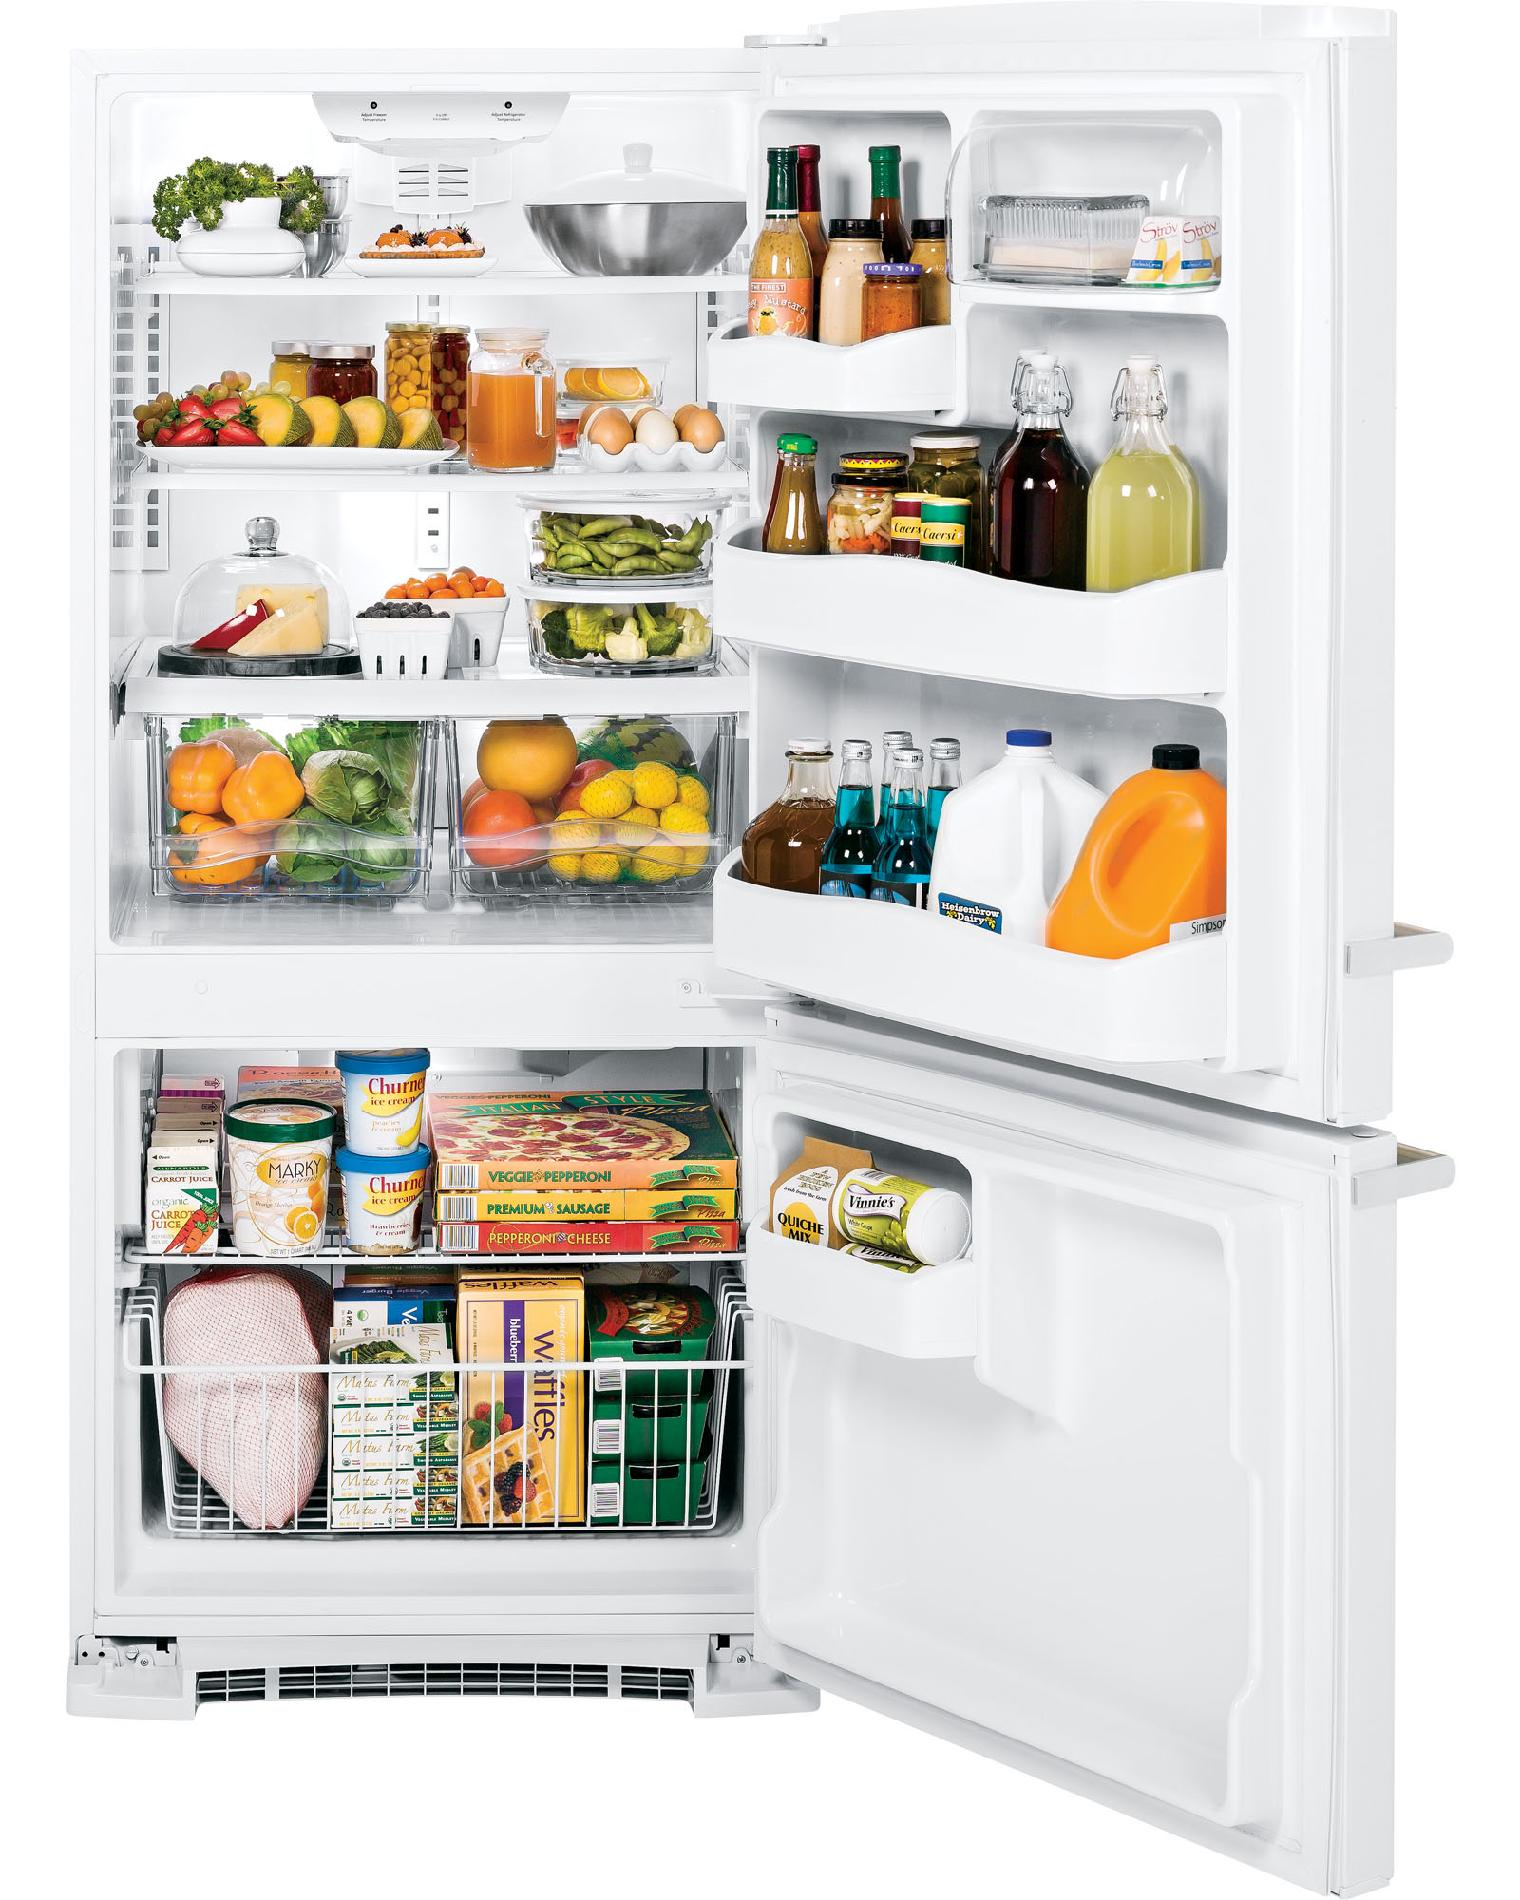 GE Appliances Artistry™ Series 20.3 cu. ft. Bottom-Freezer Refrigerator - White